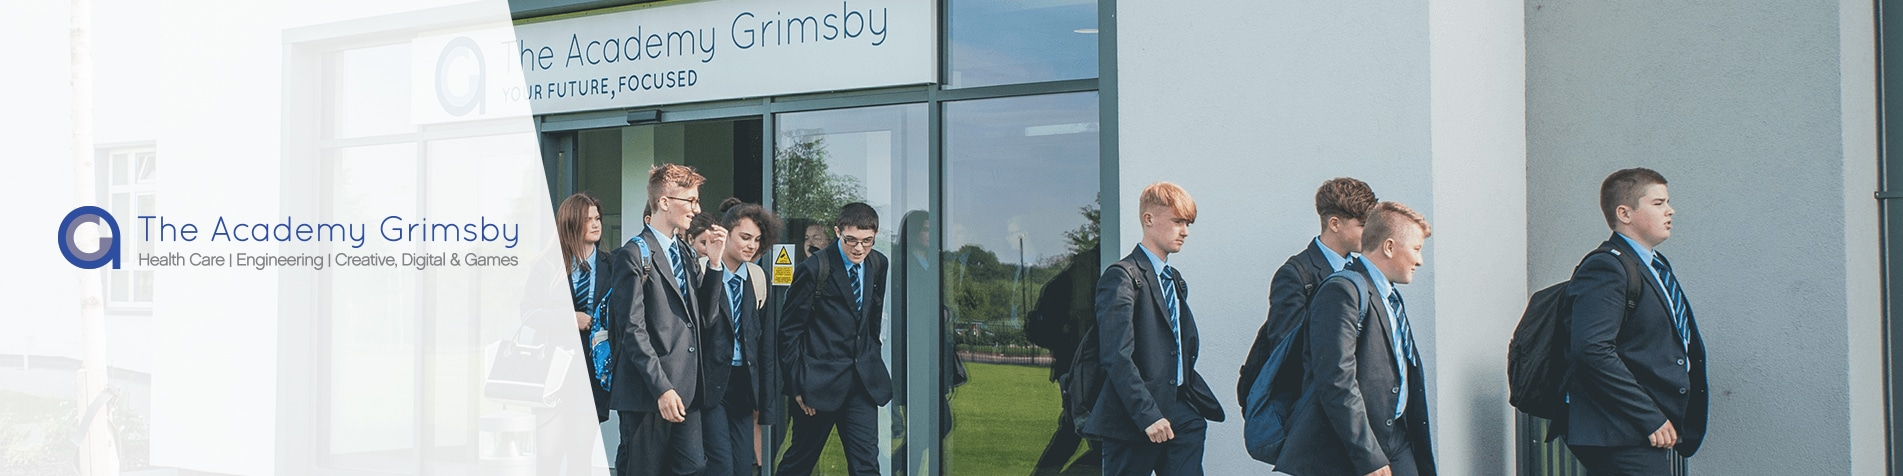 About The Academy Grimsby